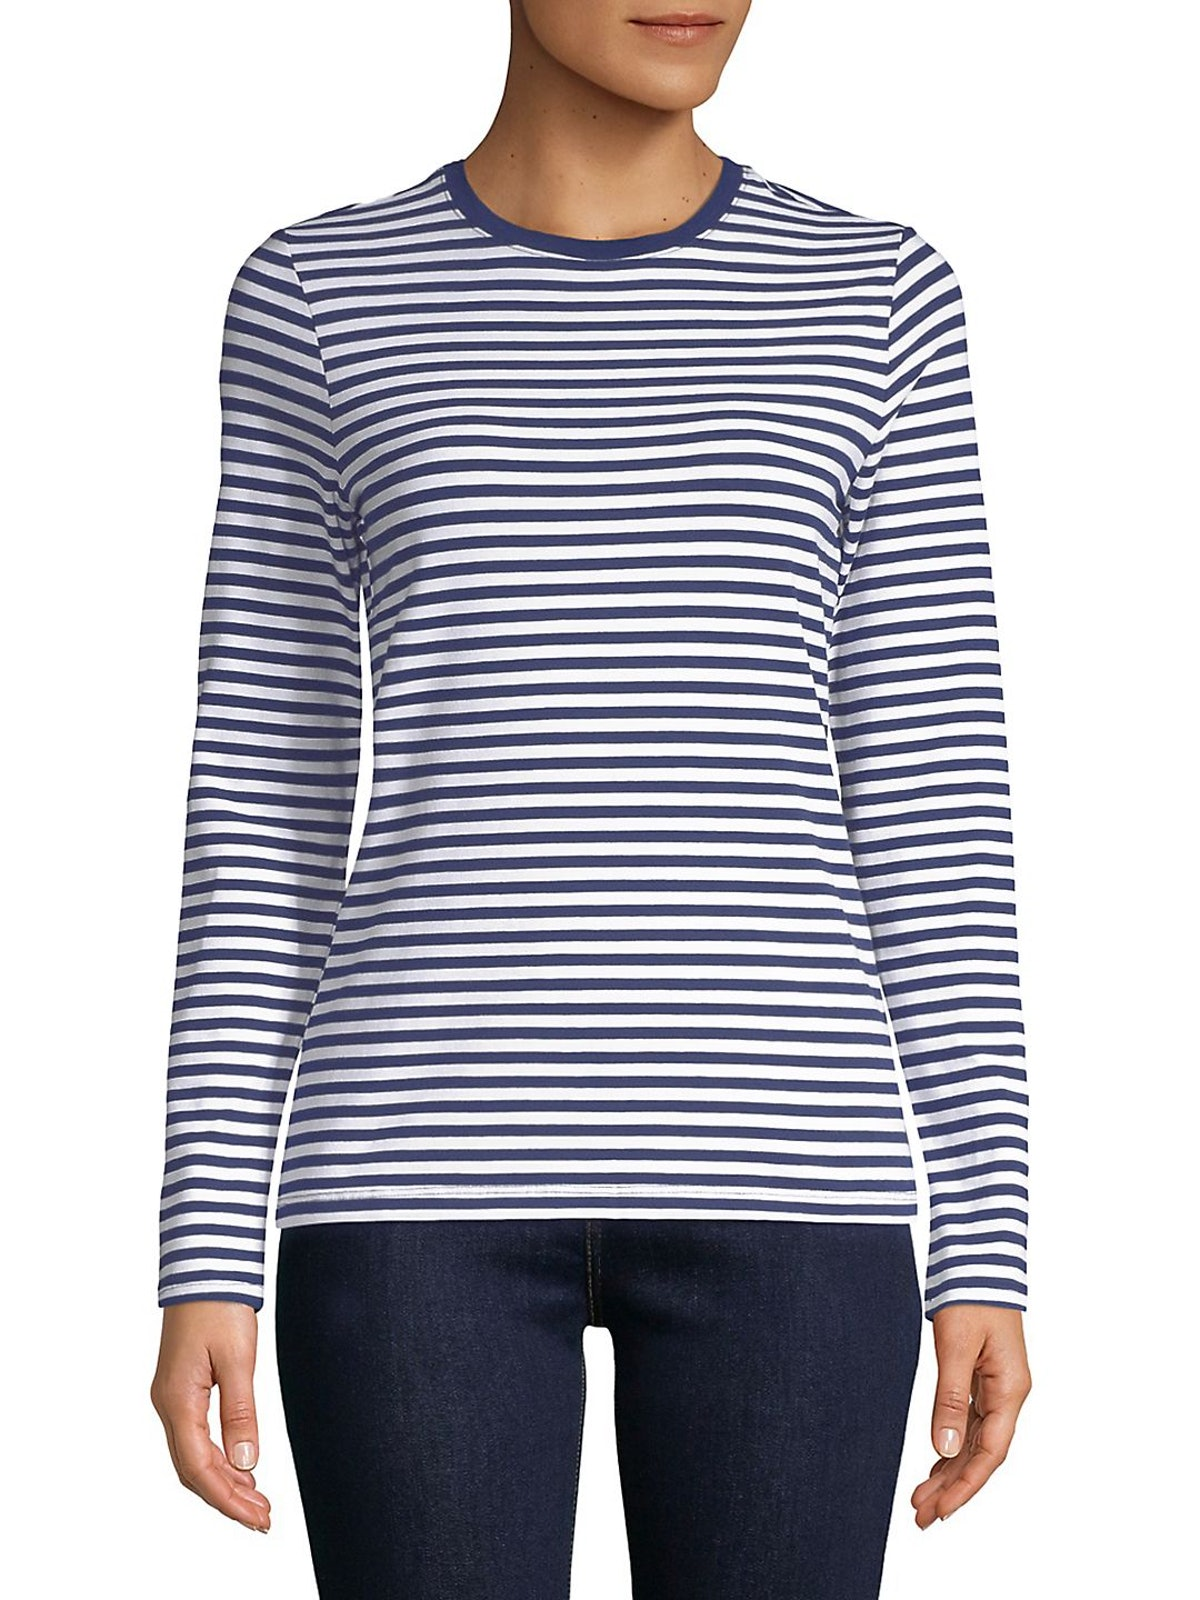 Lord & Taylor  Long-Sleeve Essential Striped Crew Neck Tee